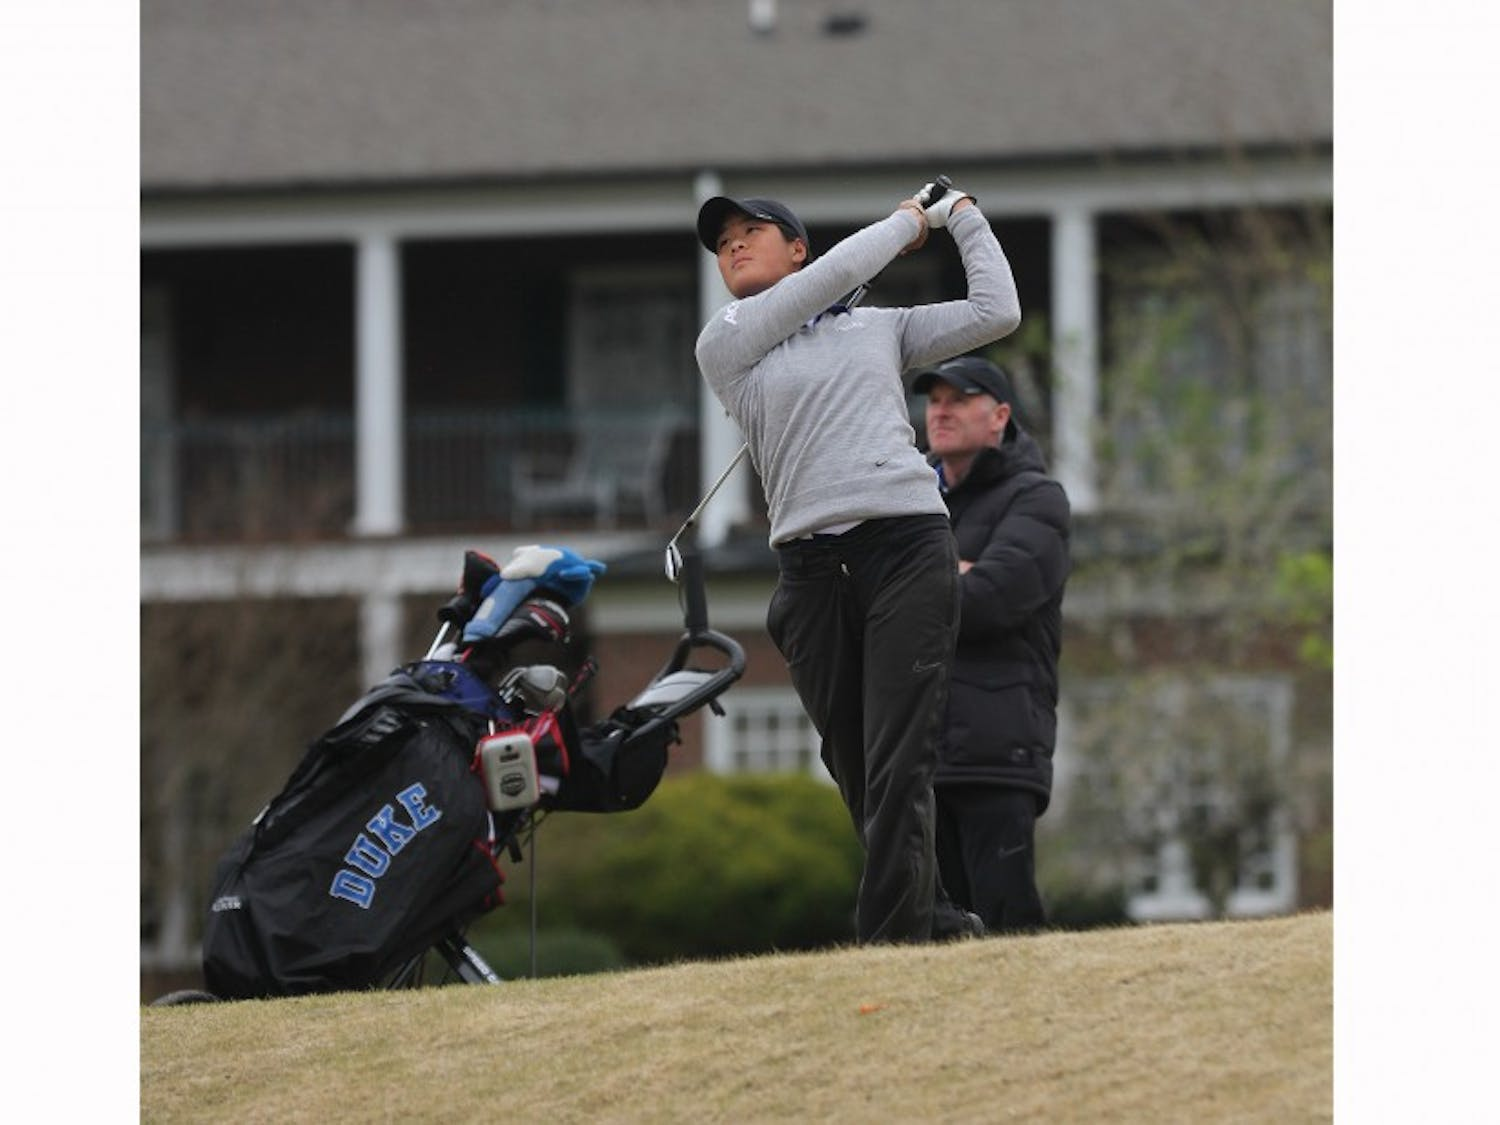 Junior Celine Boutier led the Blue Devils to a confidence-building, third-place finish at the Liz Murphey Collegiate Classic this weekend.